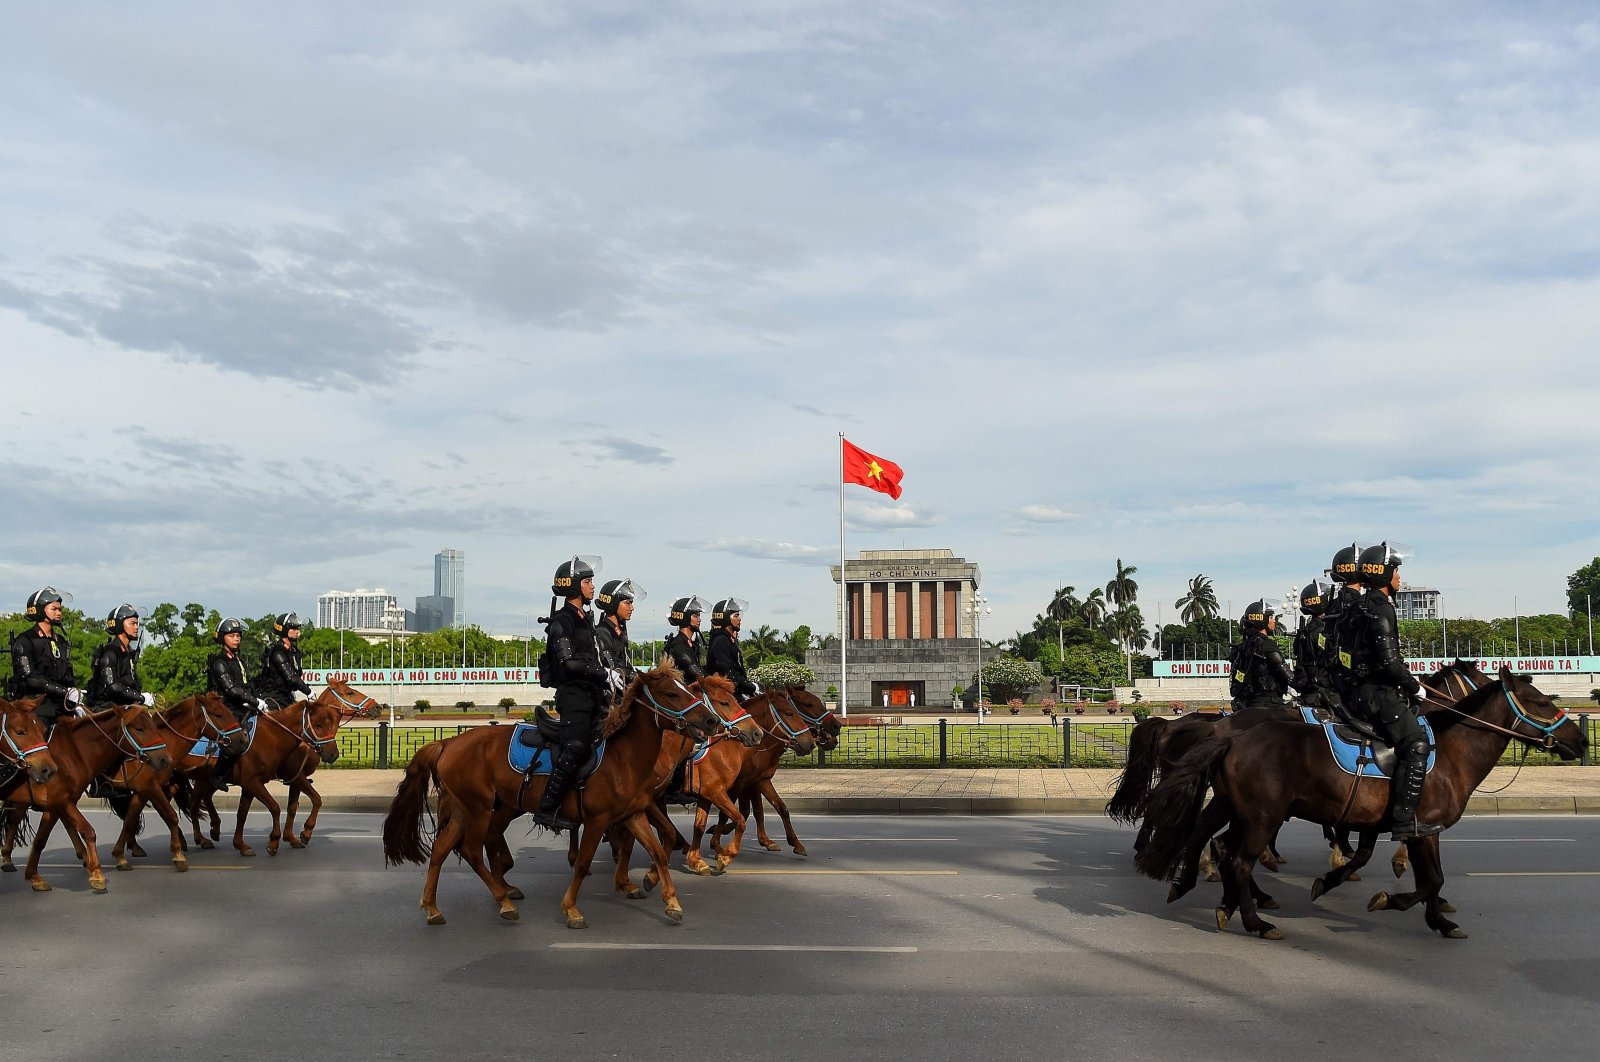 Mounted police personnel parade on horses past the Ho Chi Minh mausoleum in Hanoi, Vietnam, June 8, 2020. (AFP Photo)